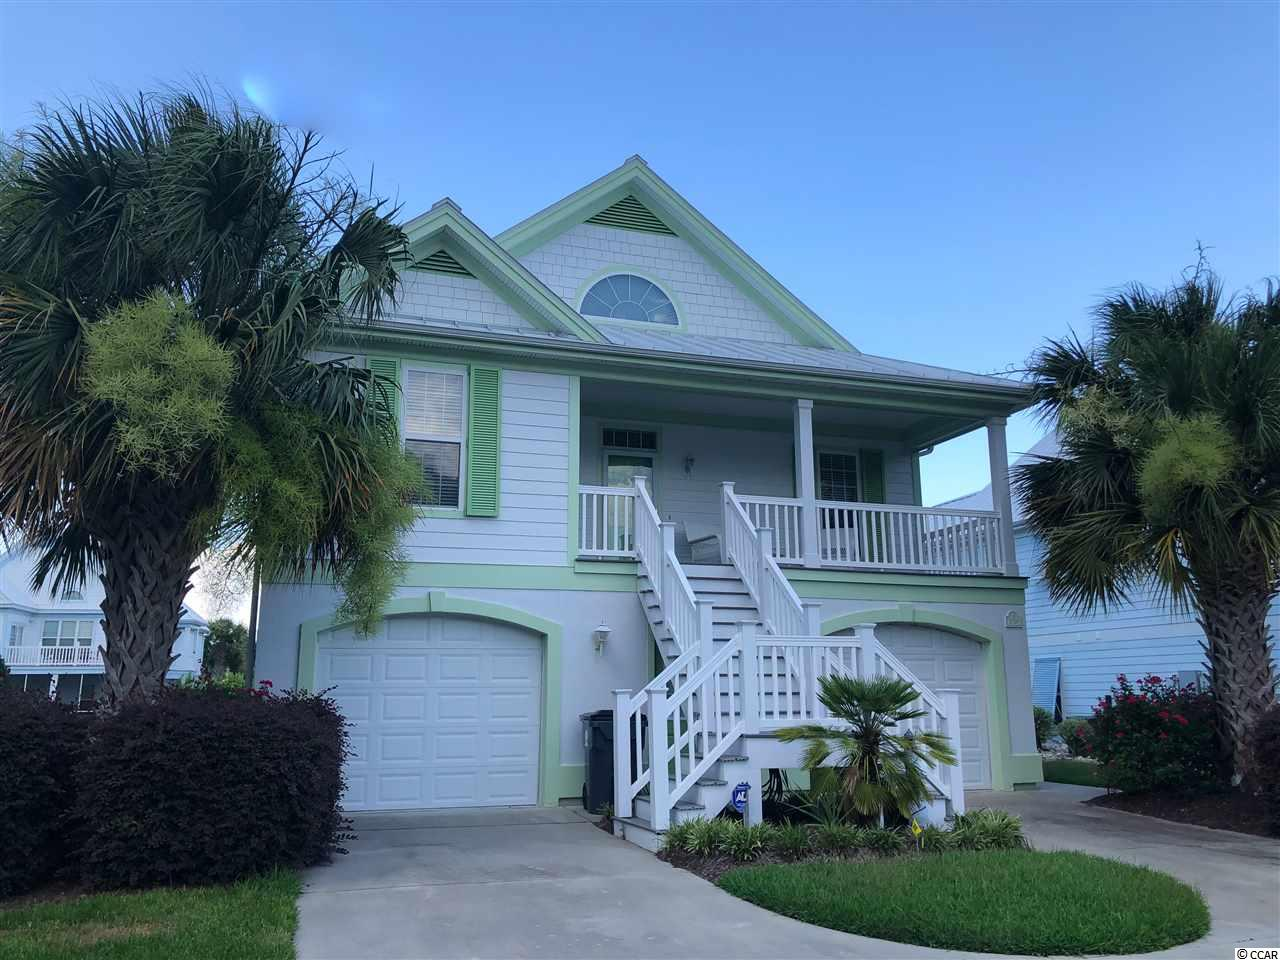 What a gorgeous and HUGE home near the ocean. Oceanside Village has its own gated beachfront access, with a bathroom and gazebo, next to the Conch Café. Imagine going to the beach by golf cart, lunching on the porch of the Conch with a divine ocean view, returning to taking a dip in one of the two community pools, and having a raised beach home large enough for the whole family! Bermuda Bay is a beautiful neighborhood inside Oceanside Village. The pastel homes are stately, and this home boasts five bedrooms, four and a half baths. The downstairs could be a separate apartment for mother or guests, or rentals, since it has its own kitchen, living/dining, two bedrooms and large bath. Upstairs, you find a huge master suite, another master suite, and a kids' room with bunkbeds, a twin and a sofa. The kitchen is open and airy and connects to the dining area. The neighborhood has a giant community center, with fun activities, tennis, bocce ball, pickle ball, playground, dog park, and much more. Lakes and green areas are found all around the community. You will love the fitness center and library. Don't miss the chance to buy into this lifestyle! This home is beautifully and elegantly furnished. Ready for you to enjoy...